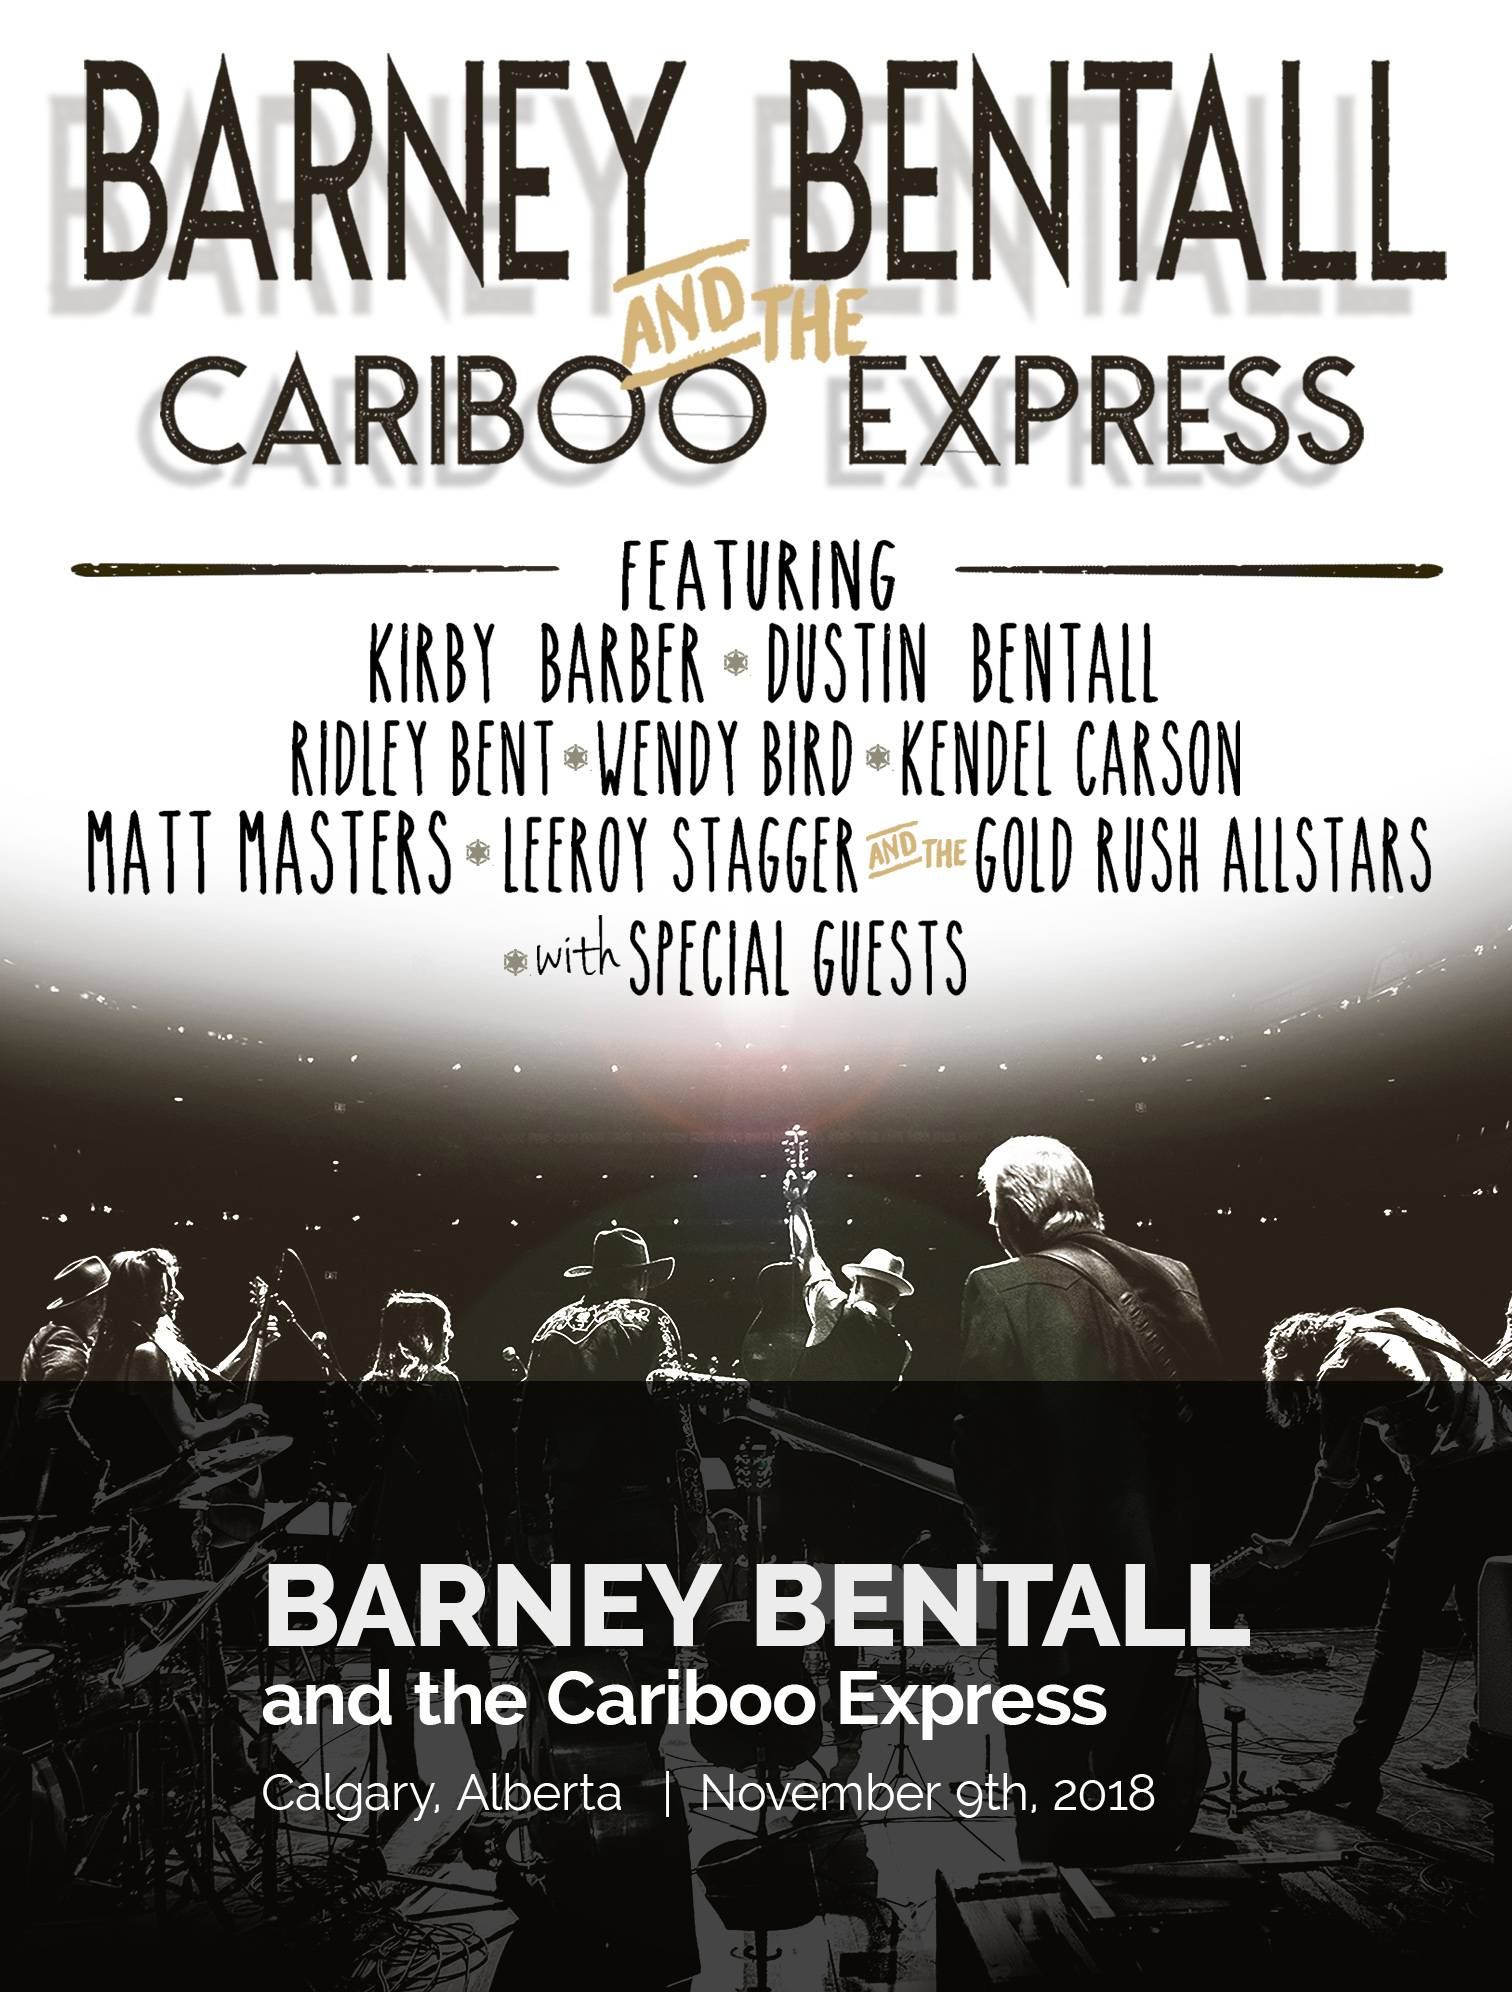 Barney Bentall & The Cariboo Express 2018